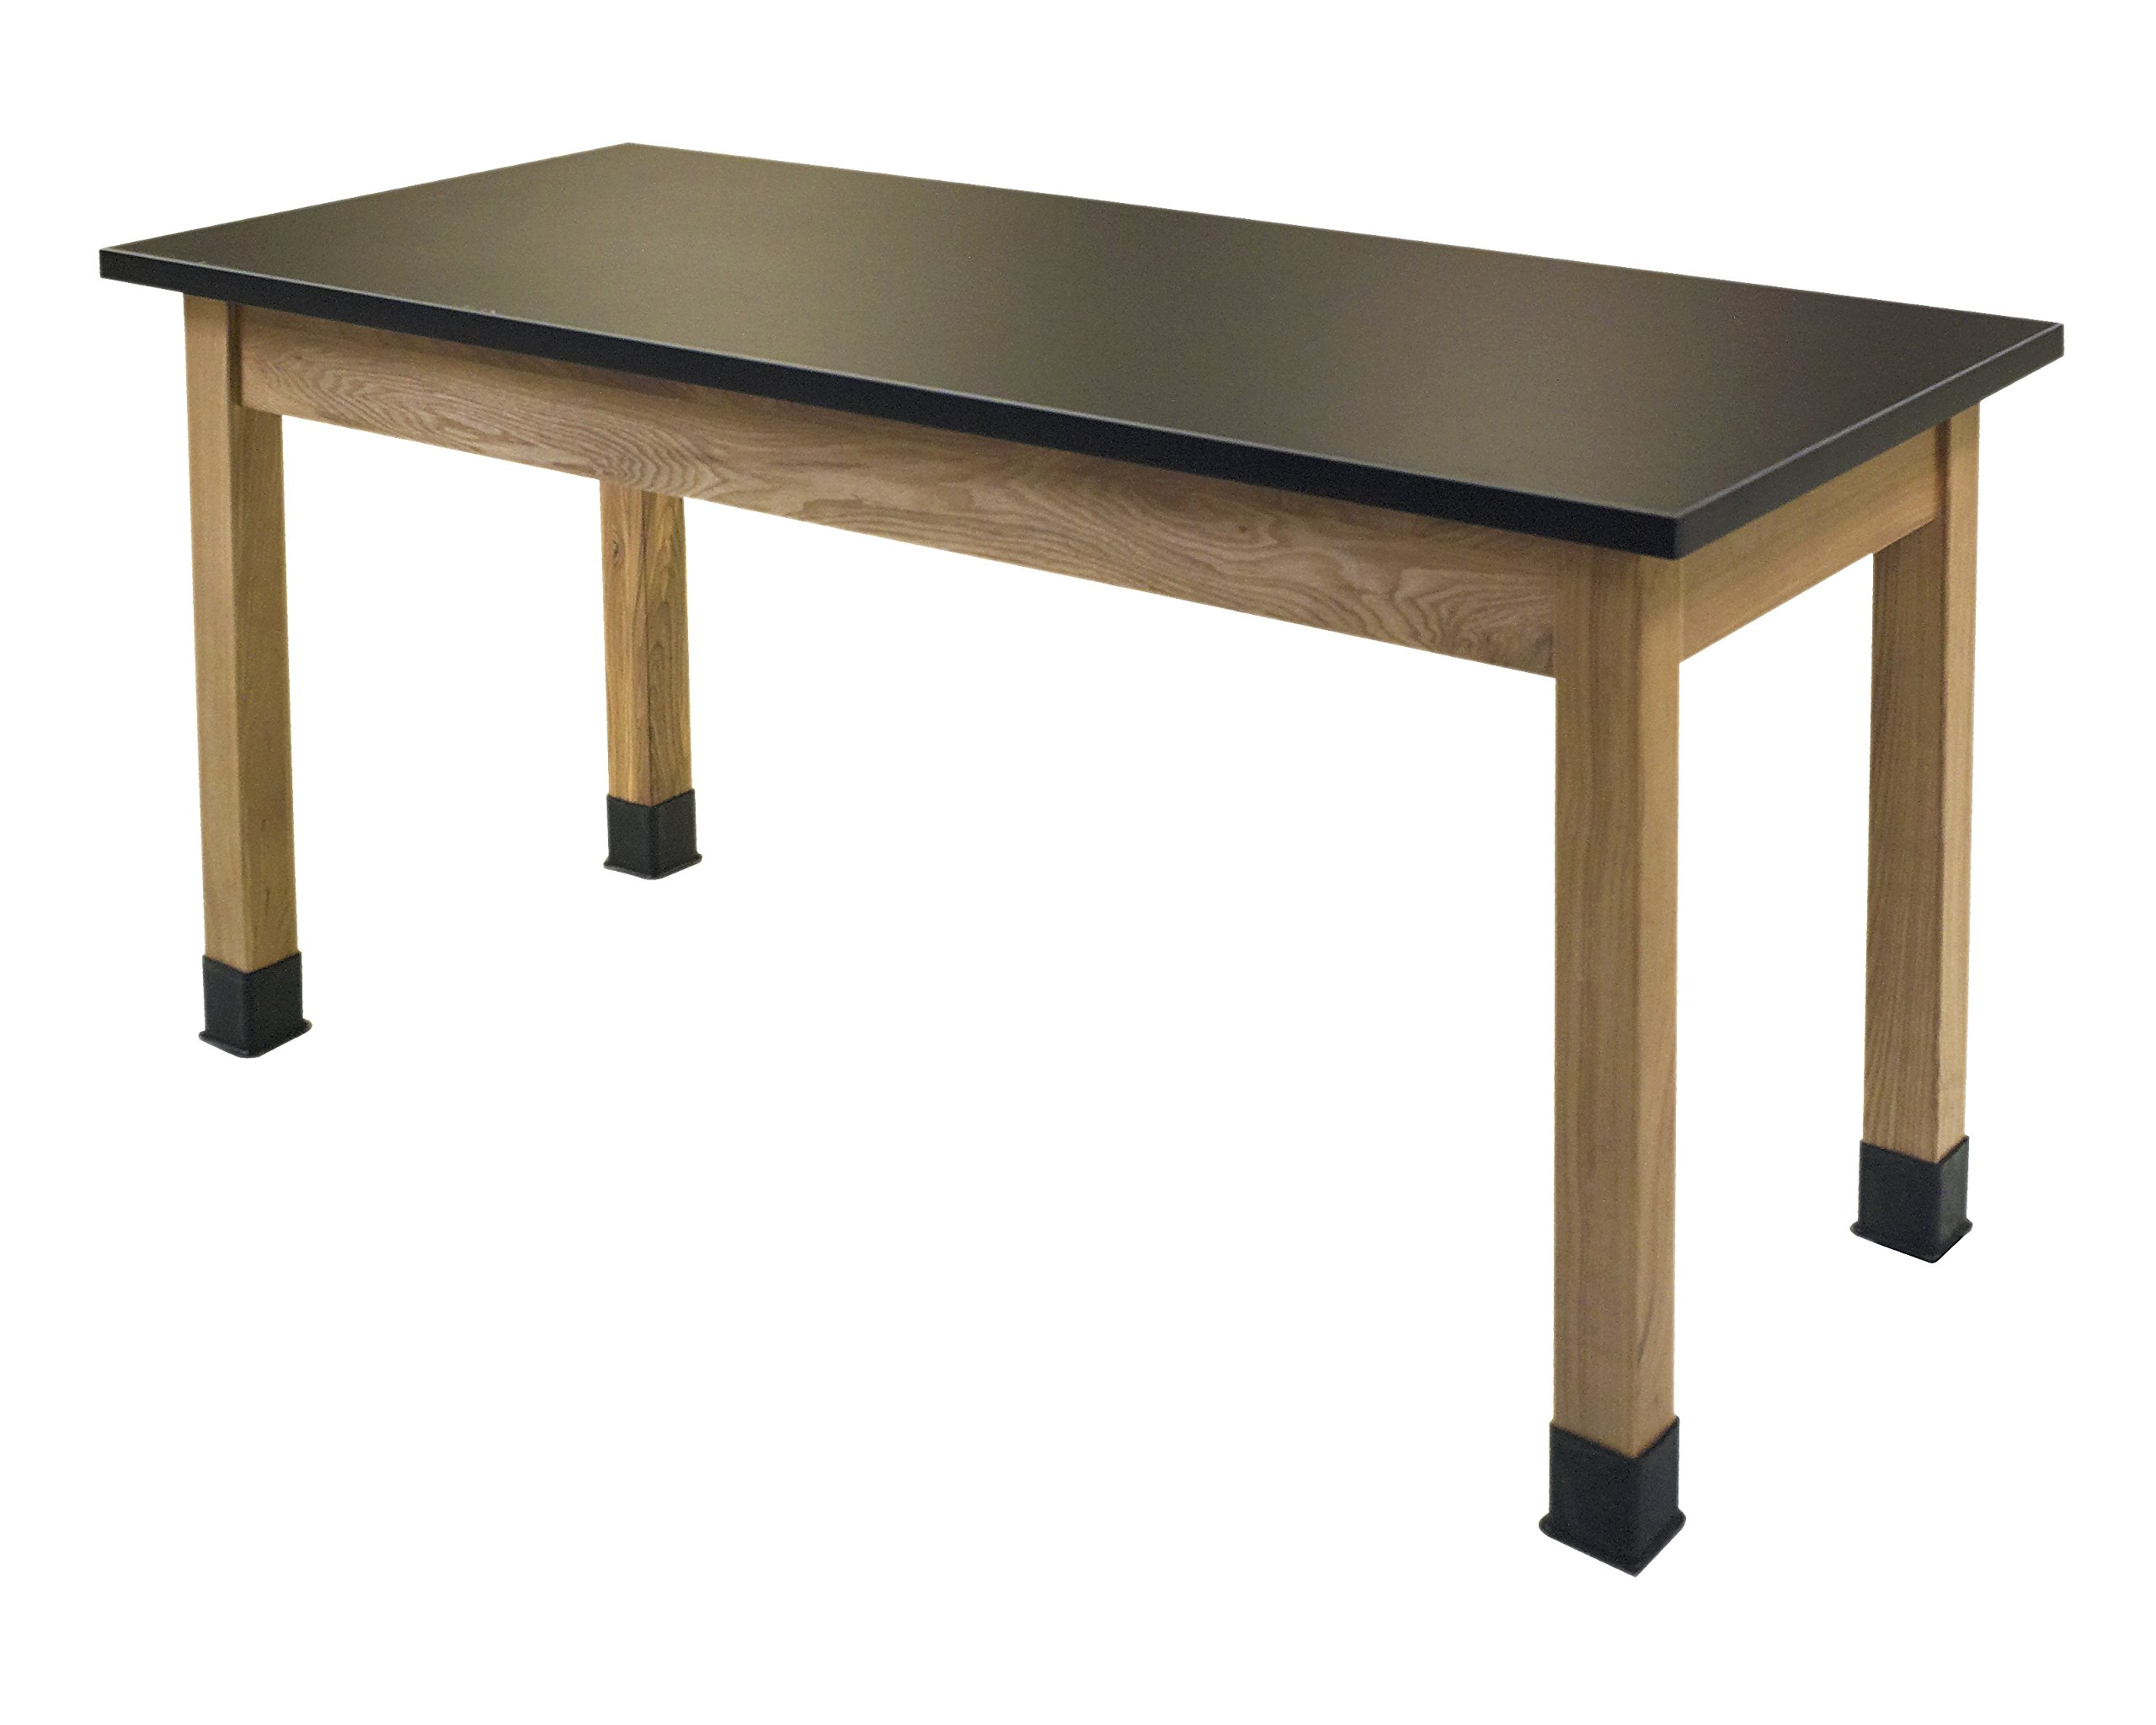 National Public Seating SLT3060 Chem-Res Top Science Lab Table, Plain Front, No Book Boxes, 30'' Height, 30'' Width, 60'' Length, Black/Oak